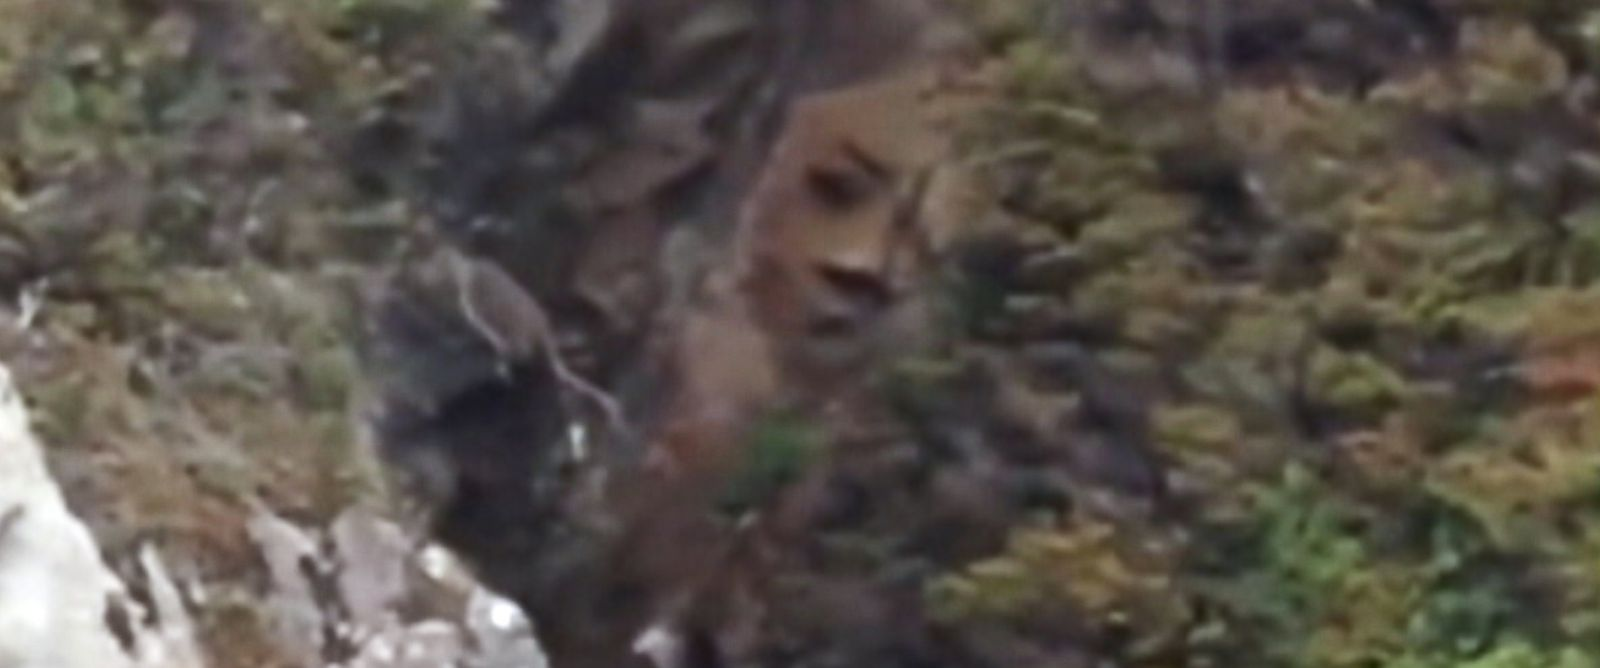 PHOTO: Canadian park officials are trying to determine the origin of a giant face that appears to be carved into a cliff side in Reeks Island, British Columbia.